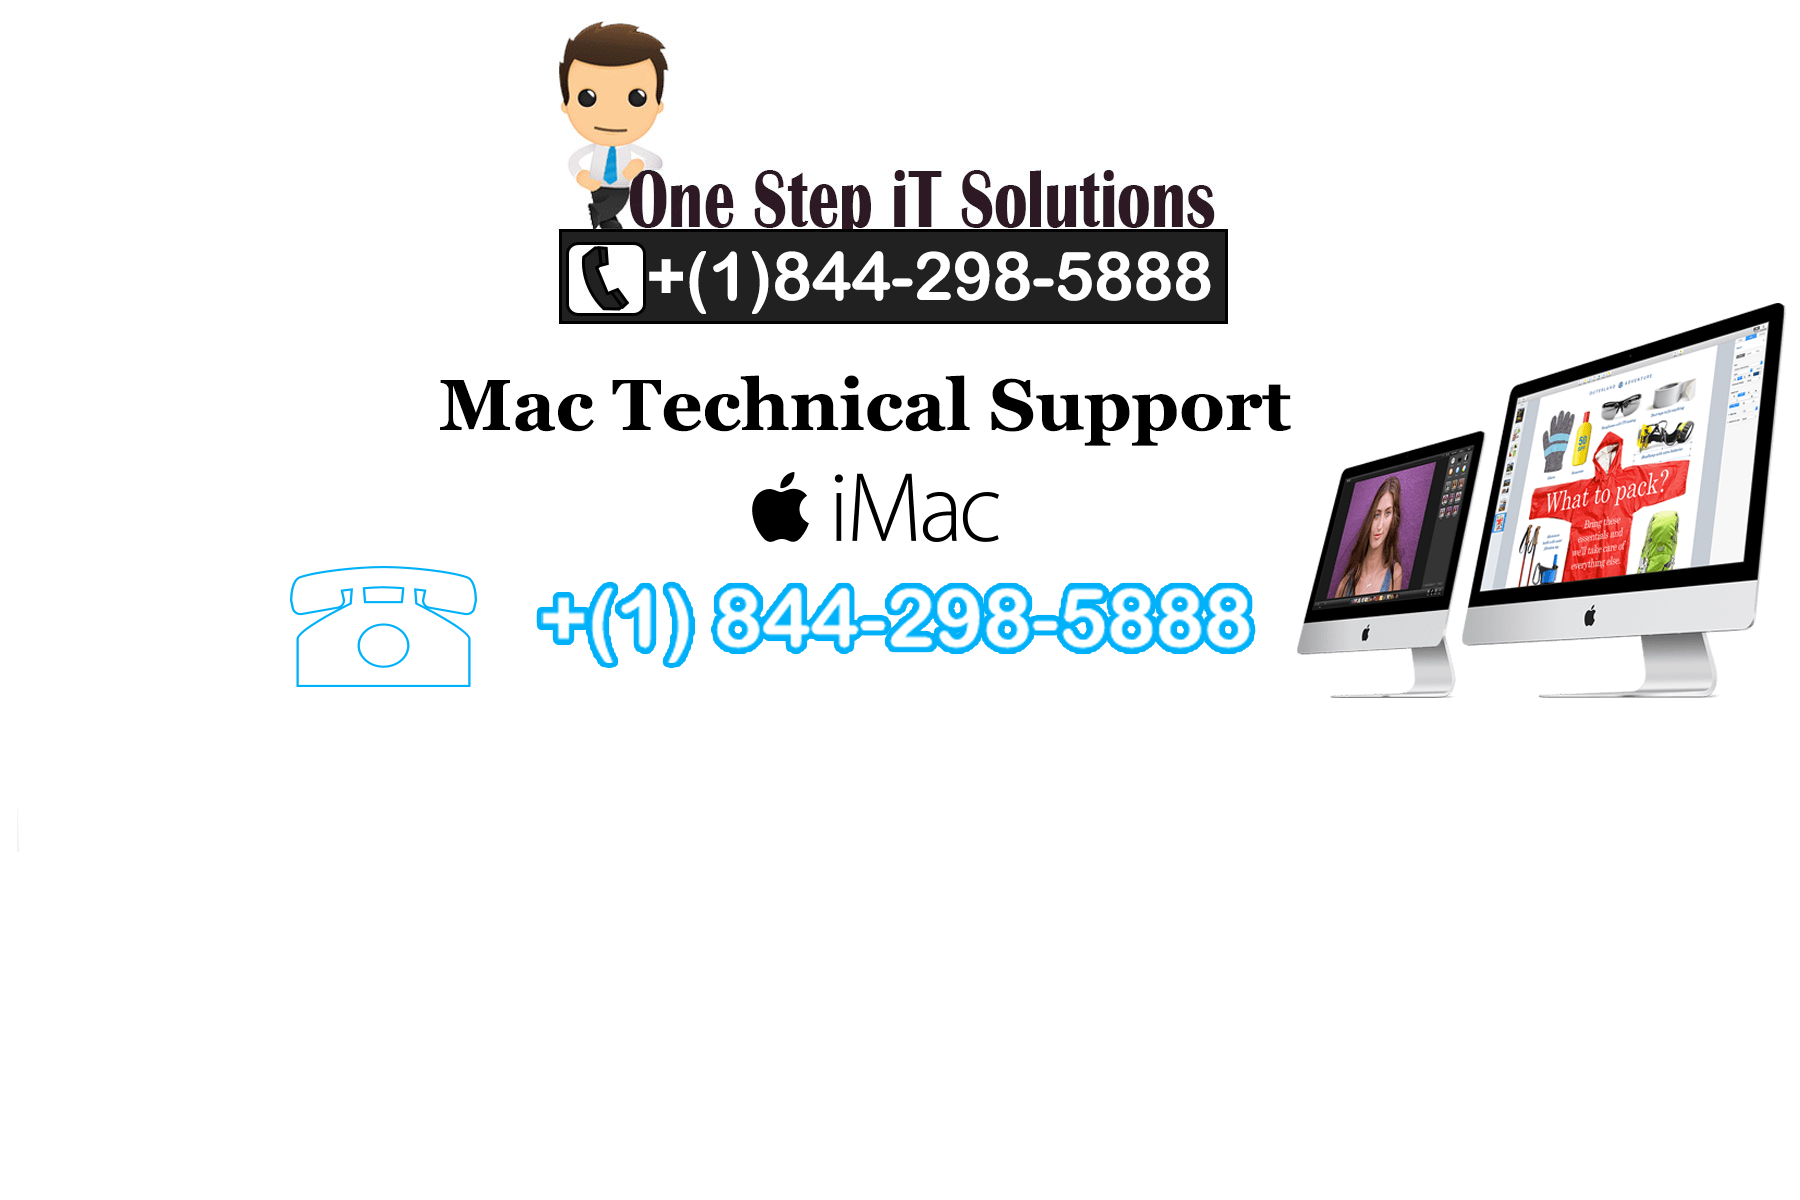 Contact Apple for Mac Technical Support and service